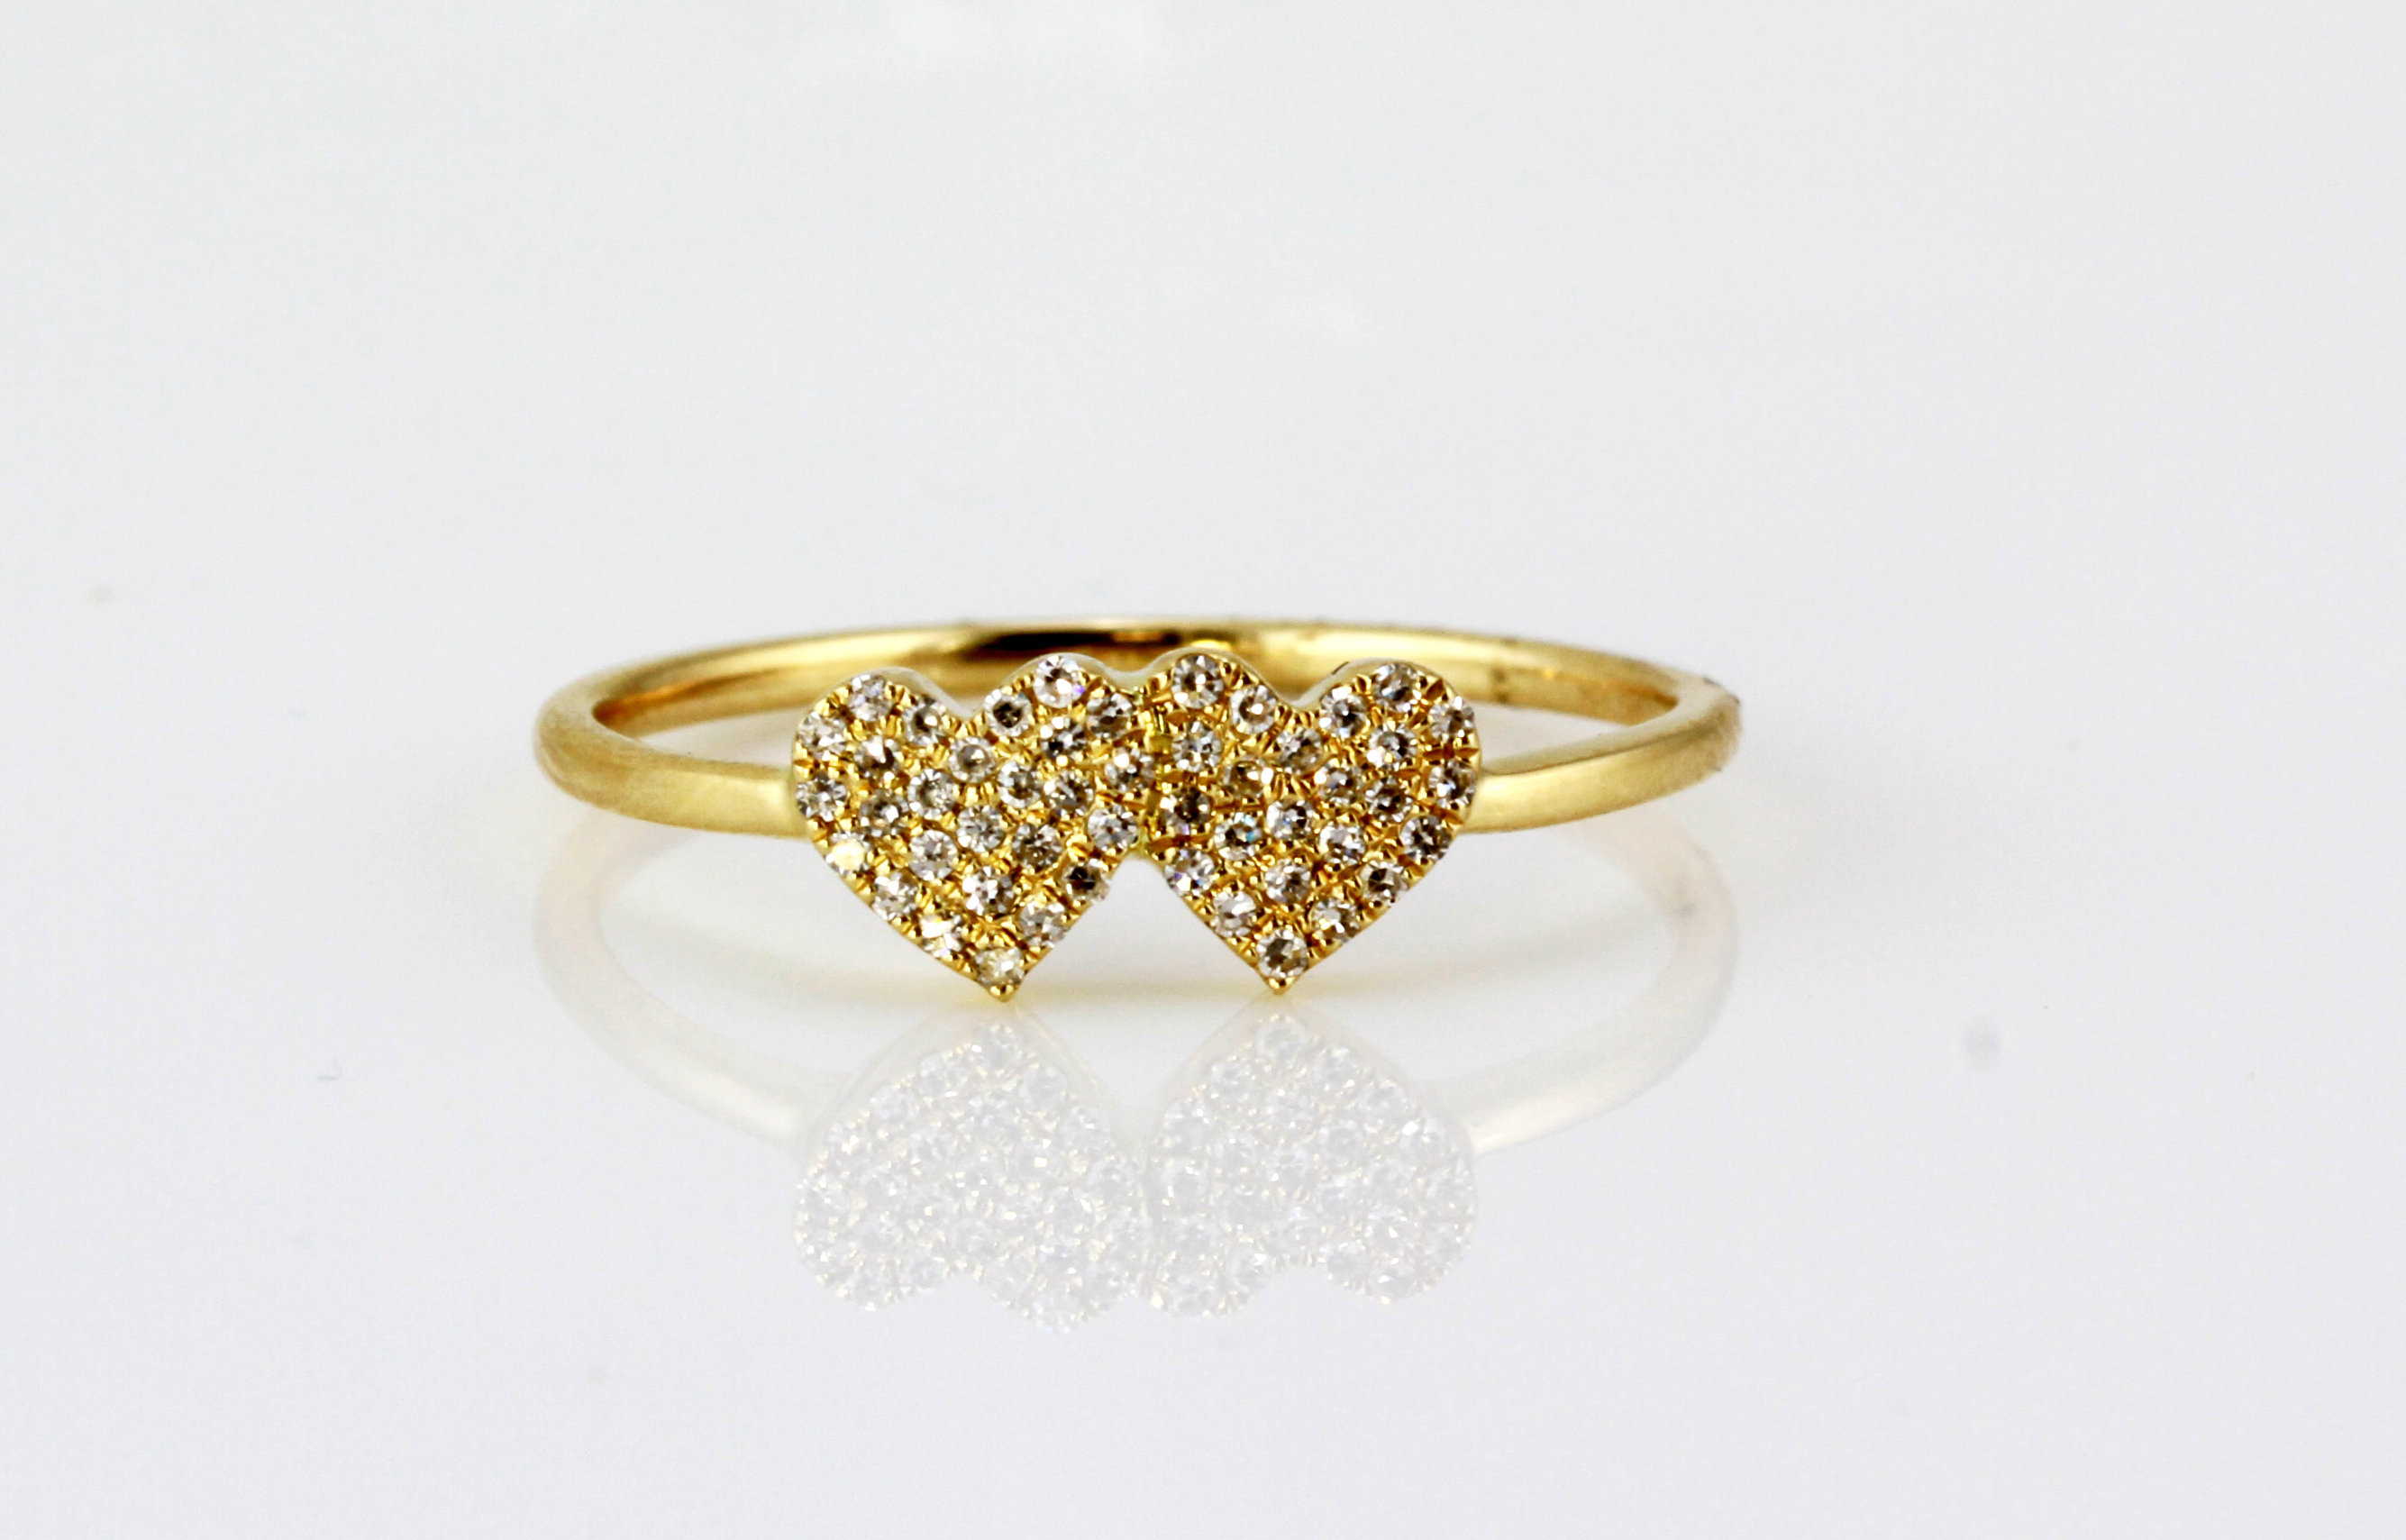 0.12Ct Pavé Round Diamonds 14K Yellow Gold 2 Hearts Band Ring Pertaining To Current Pavé Hearts Band Rings (Gallery 13 of 25)